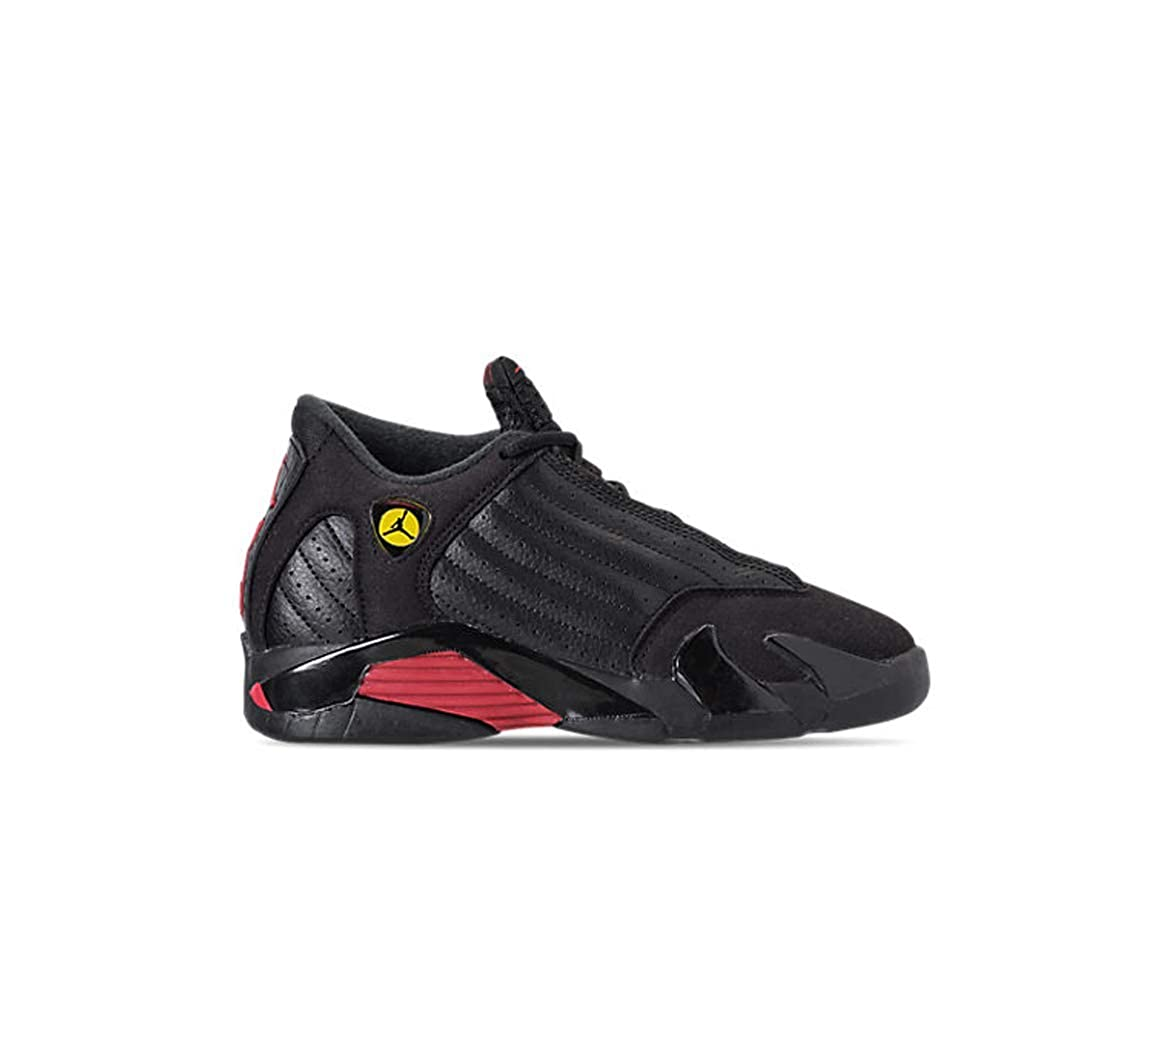 separation shoes 5cd3a eb544 NIKE Air Jordan 14 XIV Last Shot Preschool Baby Boys Shoes 312092-003 US  Infant Size 11C